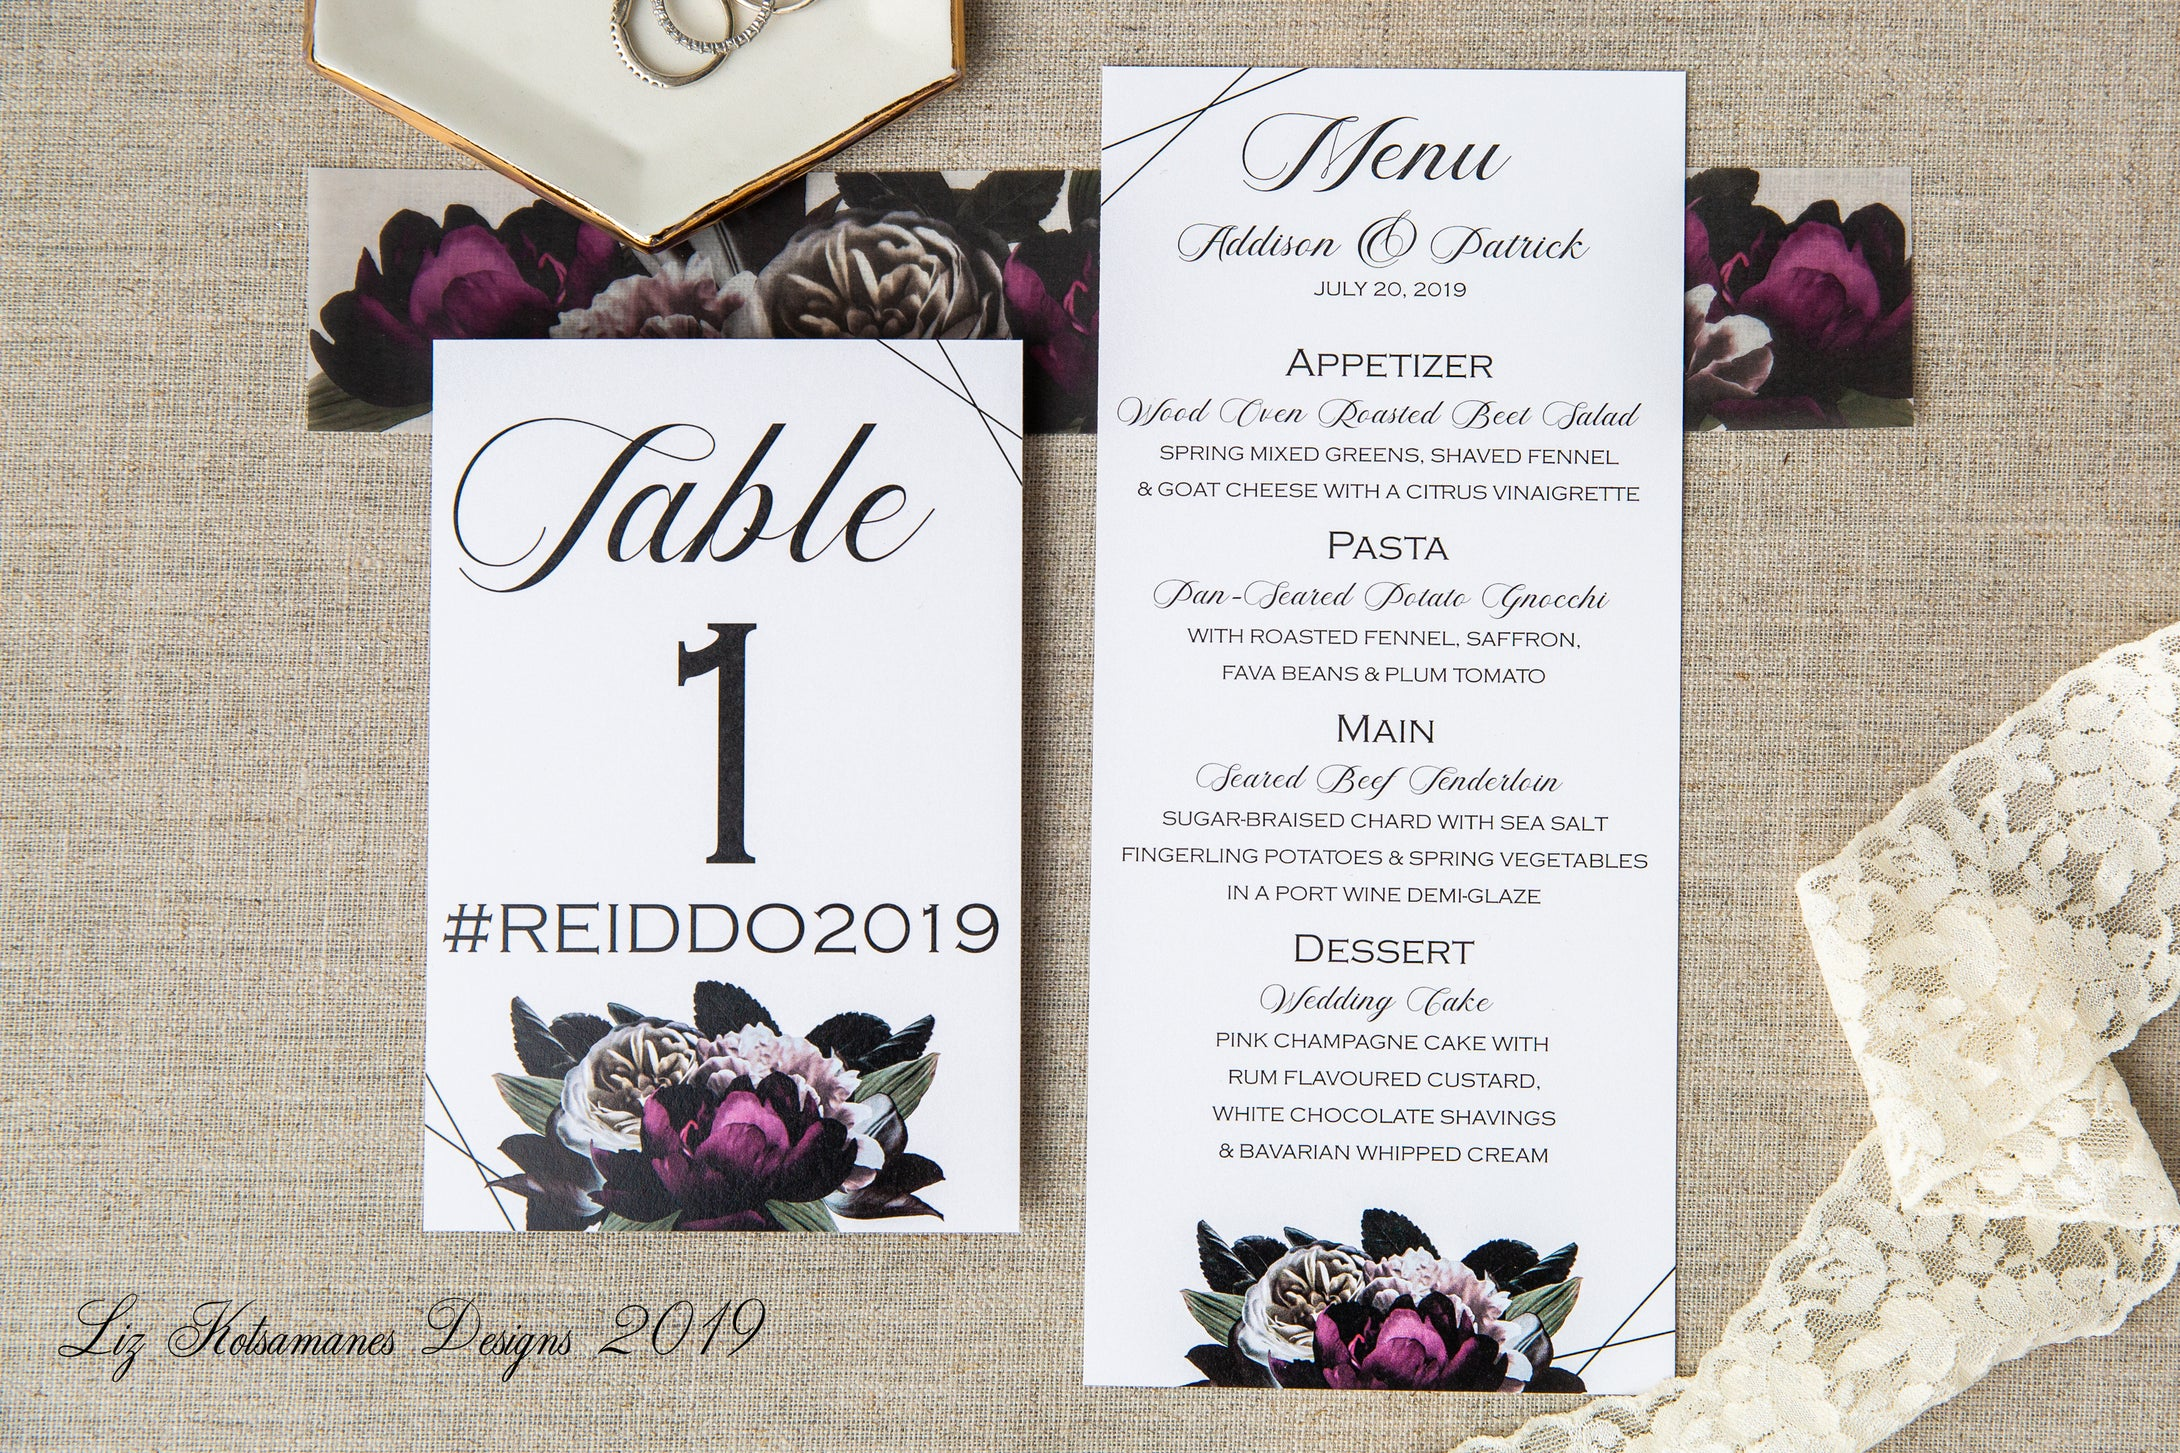 Burgundy and blush floral table number and menu by Liz Kotsamanes Designs, Cambridge, Ontario, Canada elegant luxury wedding stationery